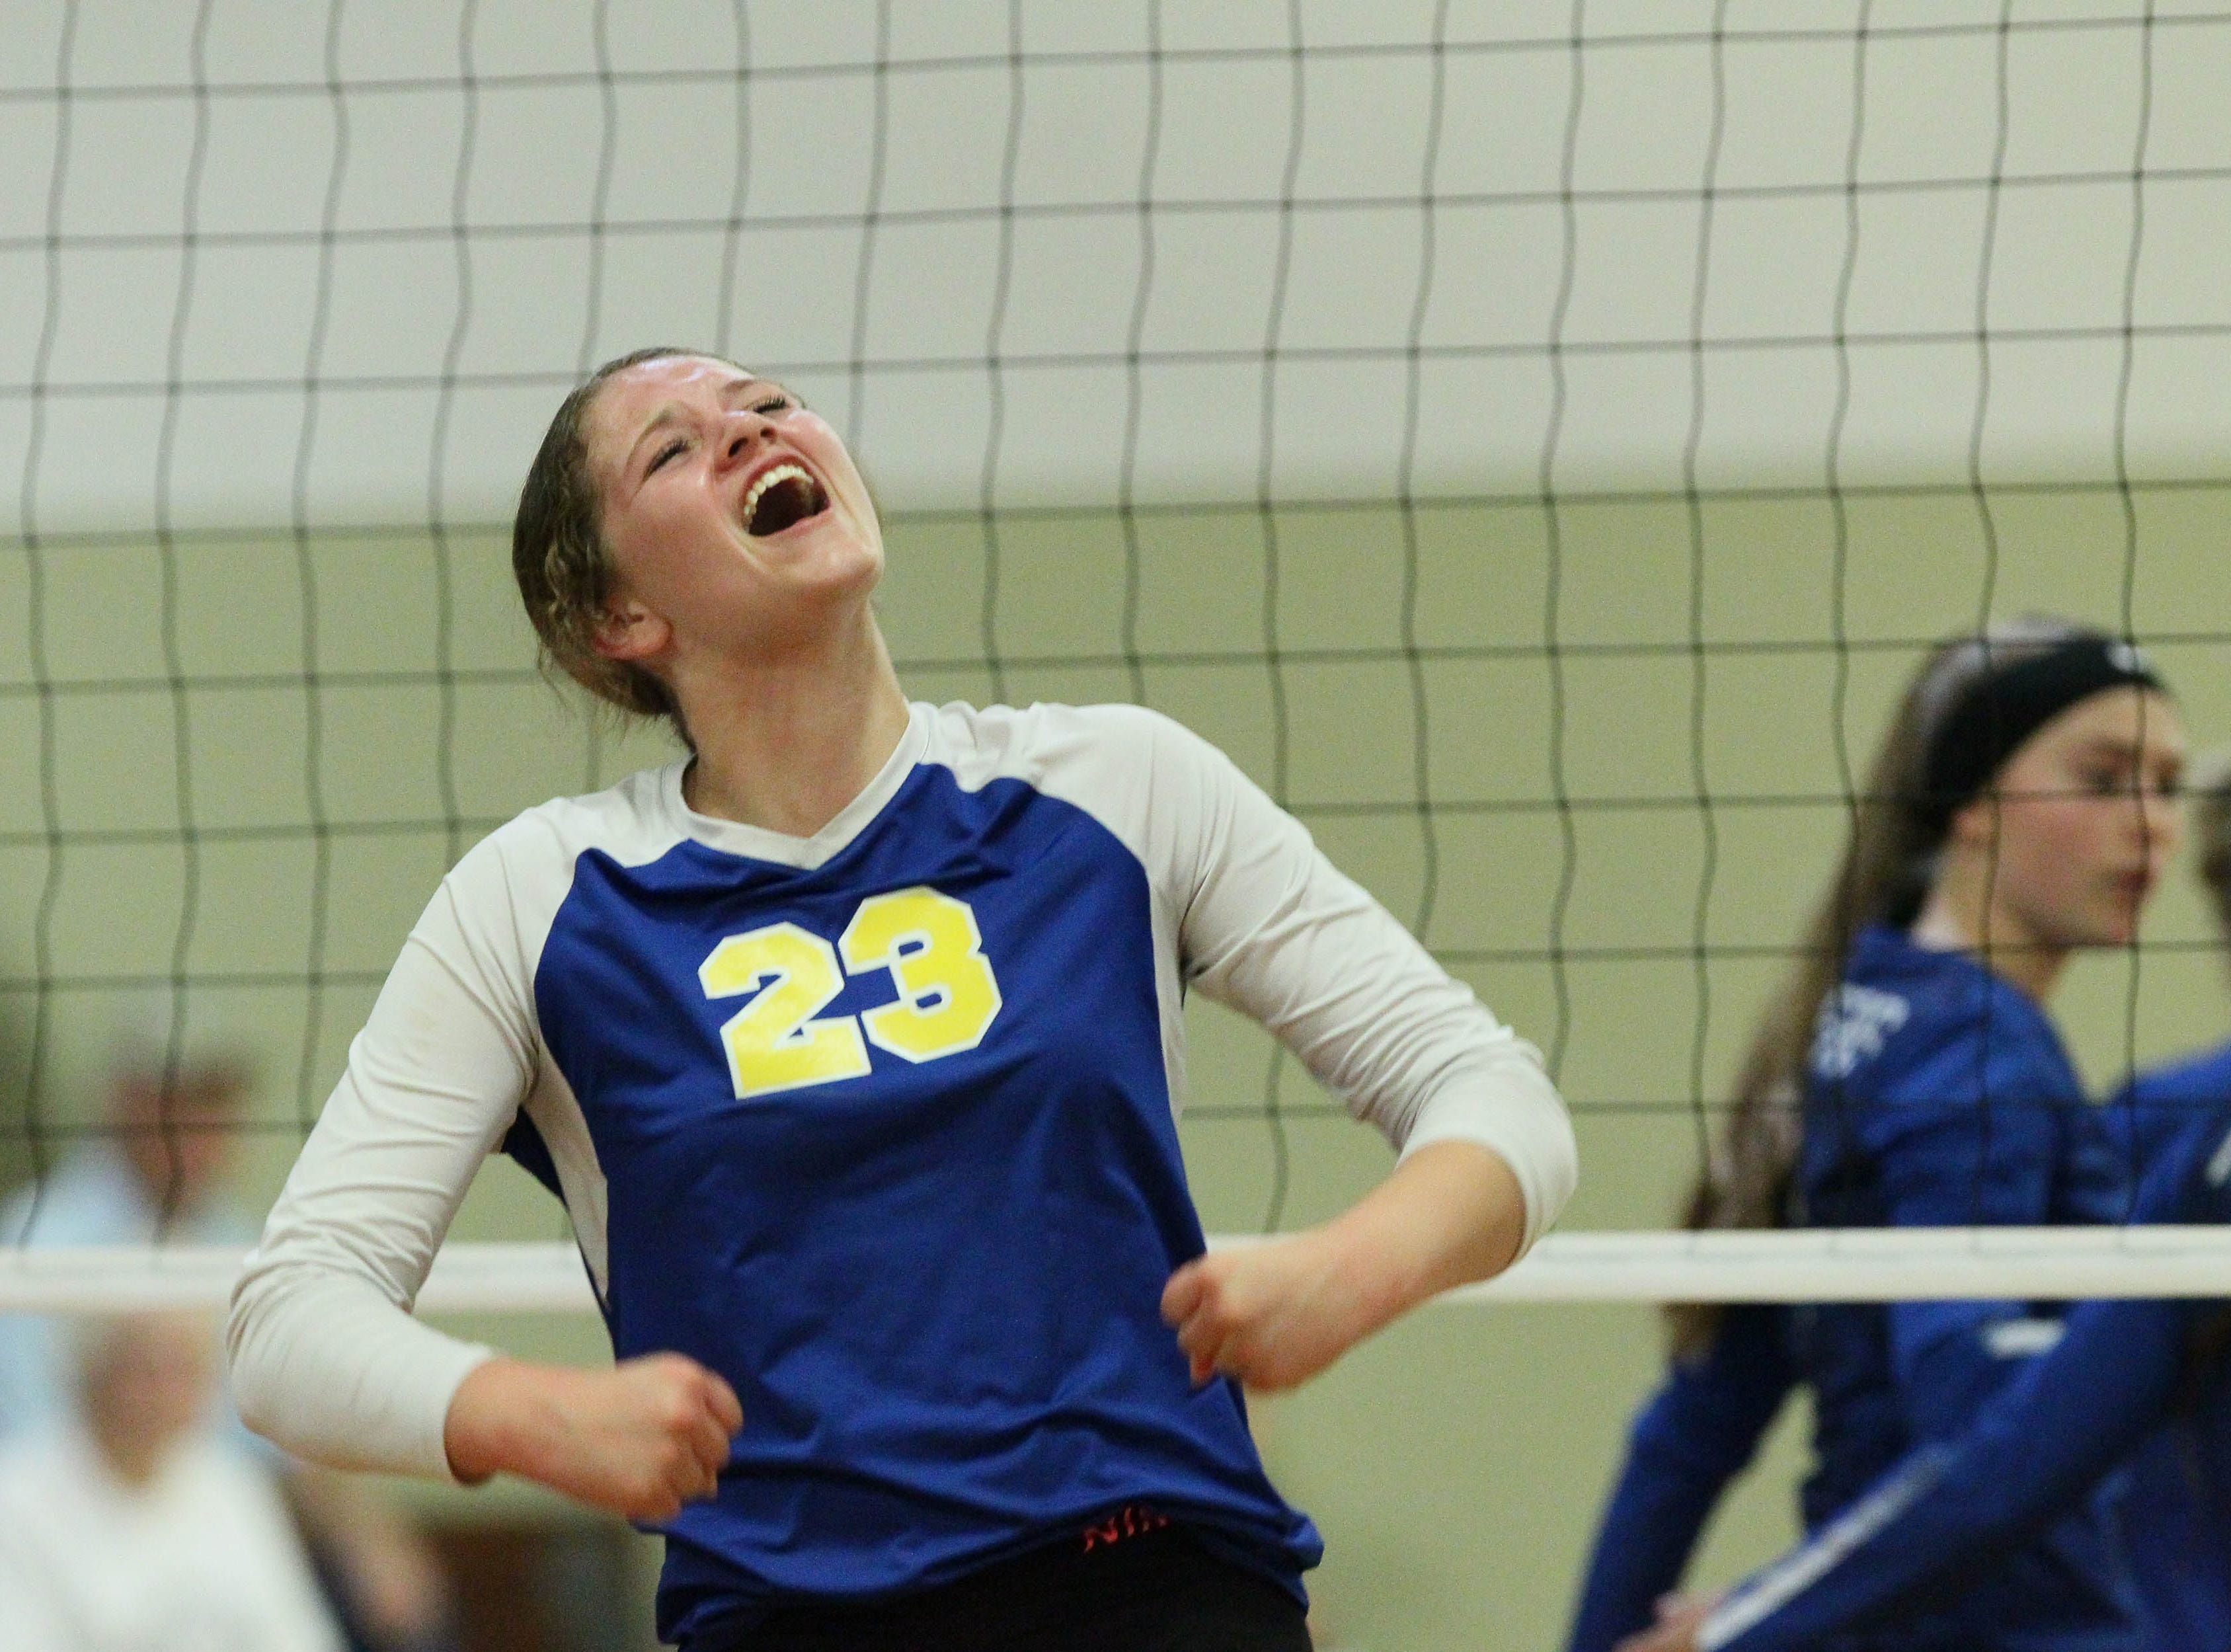 Pierce captain Callie Muniz reacts to a play during the Division IV Northern Section volleyball championship on Saturday, Nov. 3. Pierce won the match in three sets over U-Prep, 25-23, 25-21, 25-22.